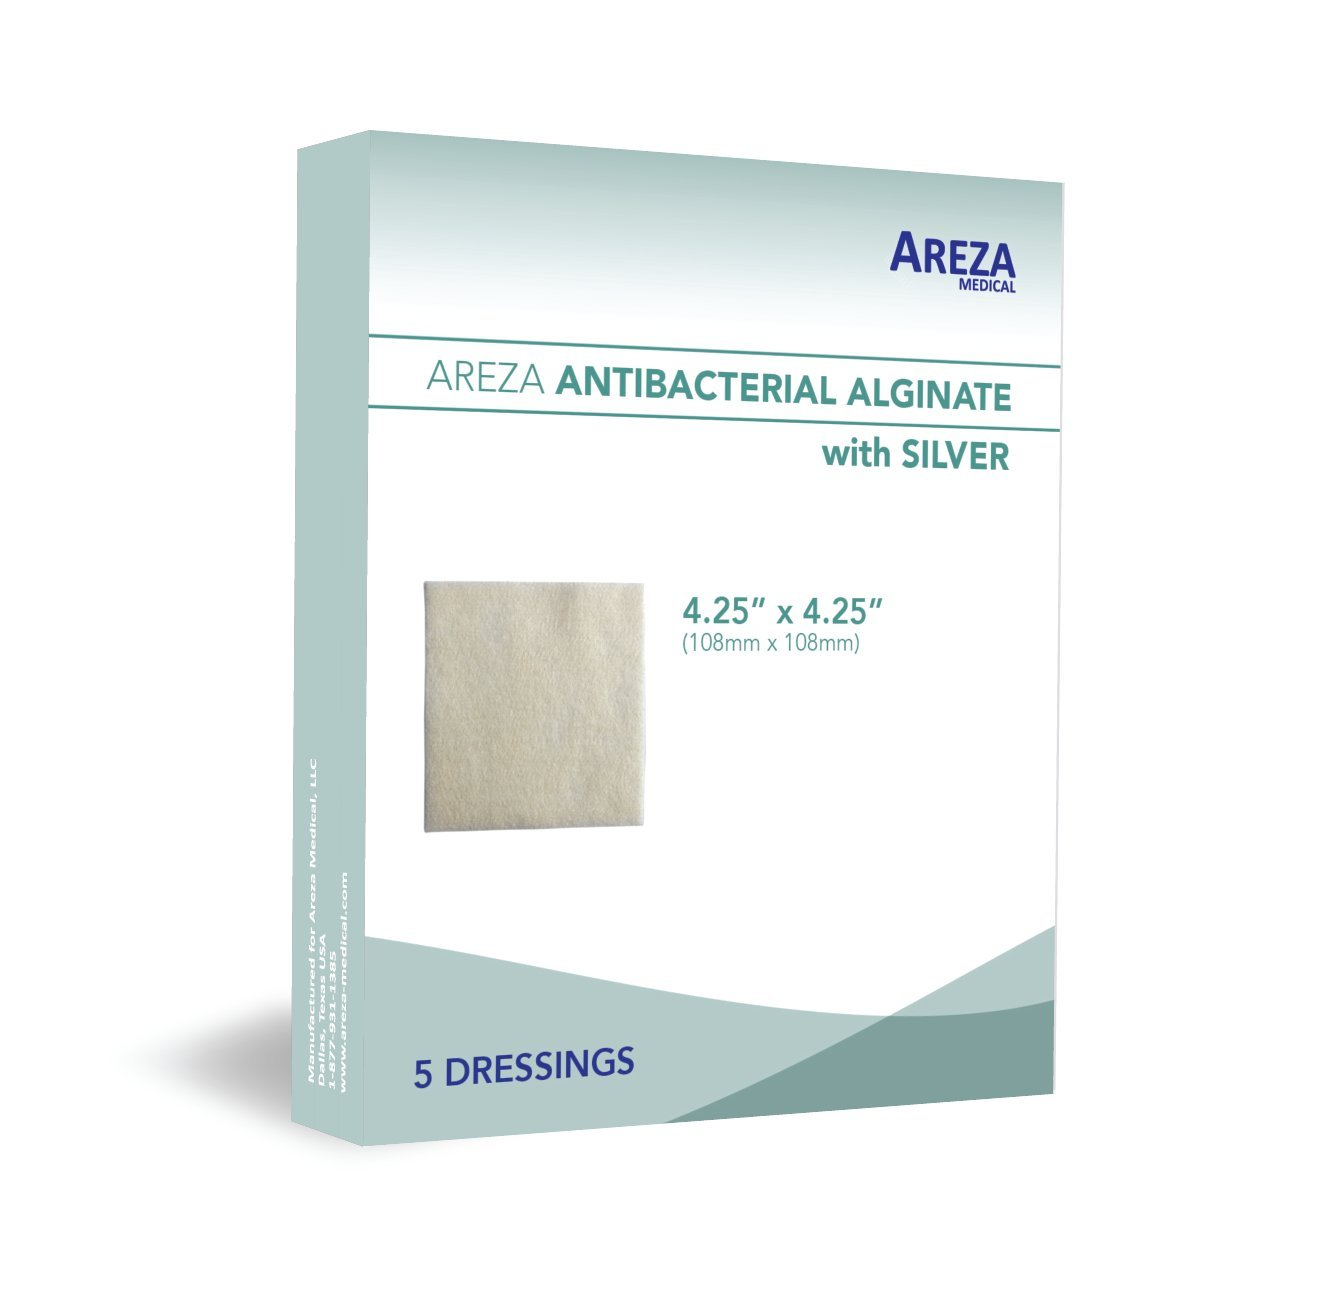 Silver Alginate (Antibacterial Alginate with Silver) 4.25''x4.25'' Sterile; 5 Wound Dressings Per Box (1) (4.25'' X 4.25'') (1) Areza Medical by Areza Medical